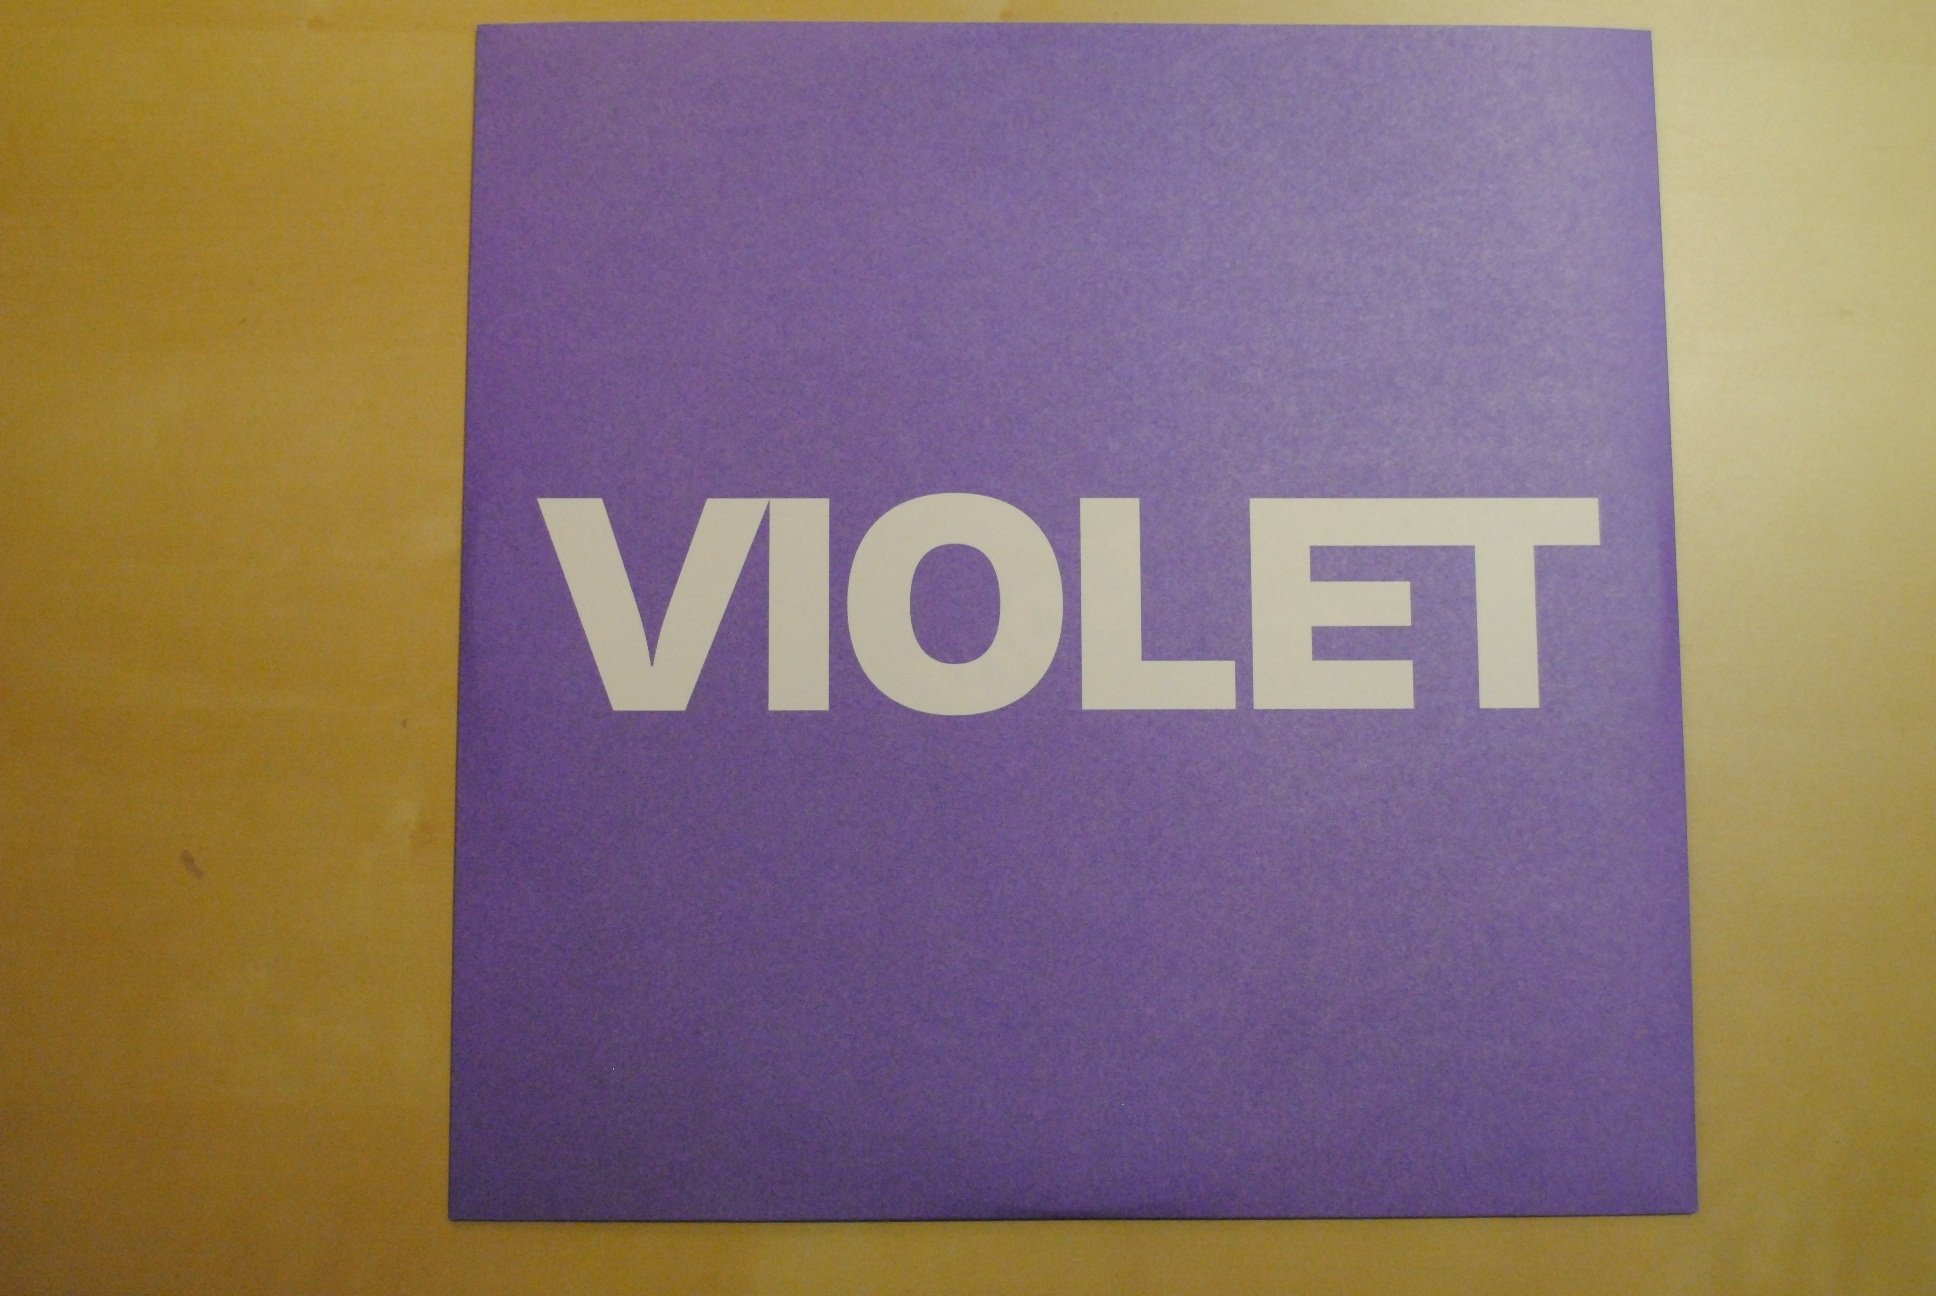 the national high violet review